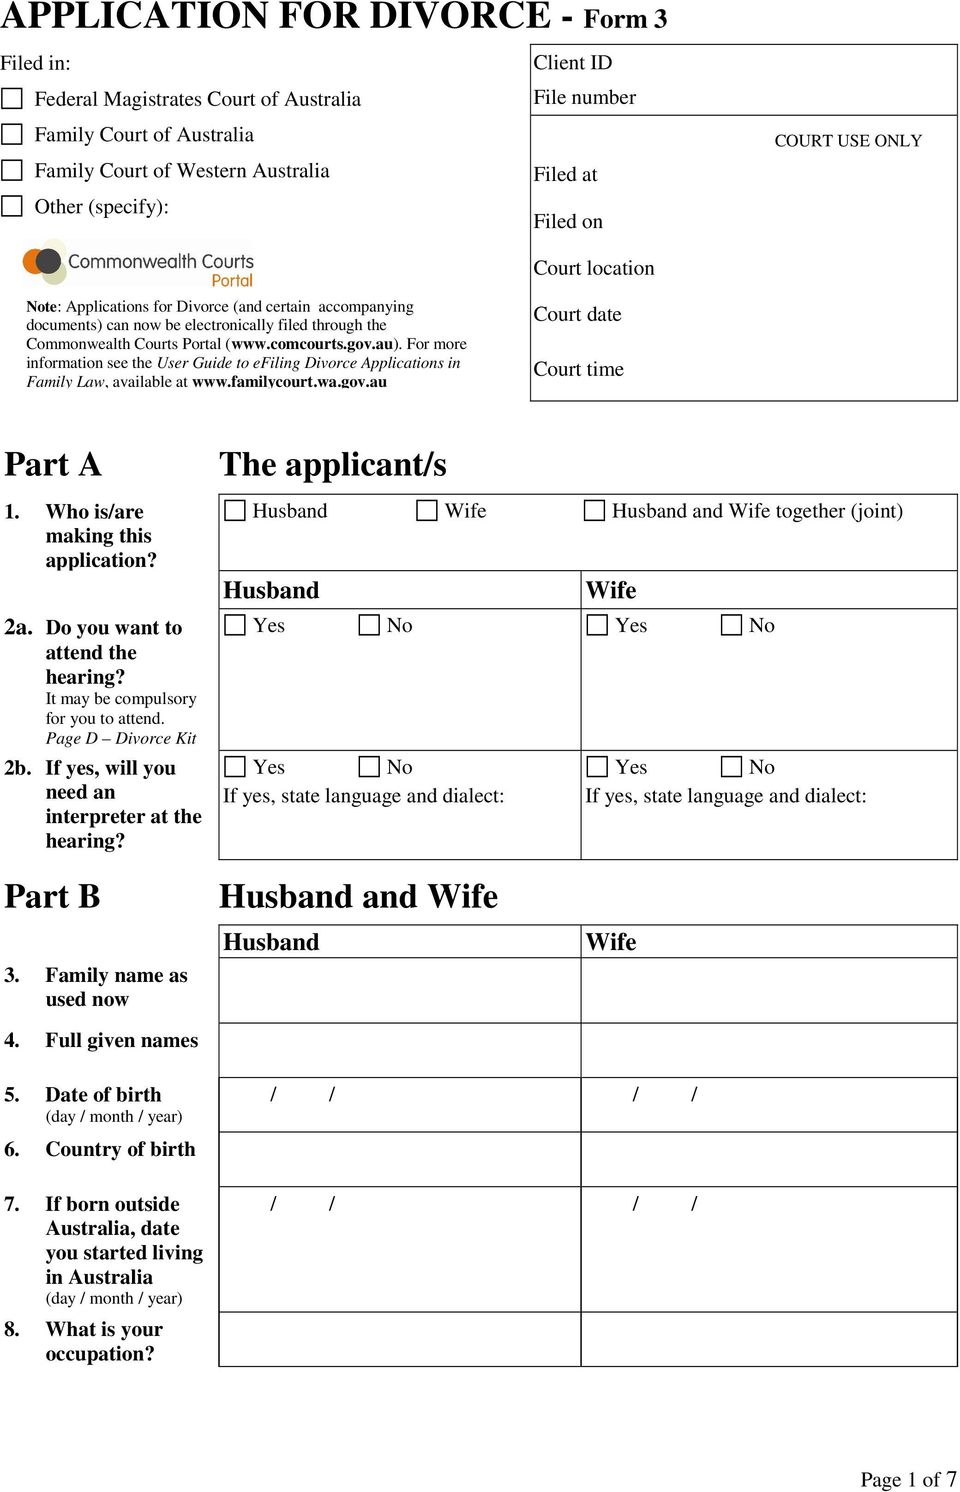 Application for divorce form 3 for more information see the user guide to efiling divorce applications in family law available solutioingenieria Gallery